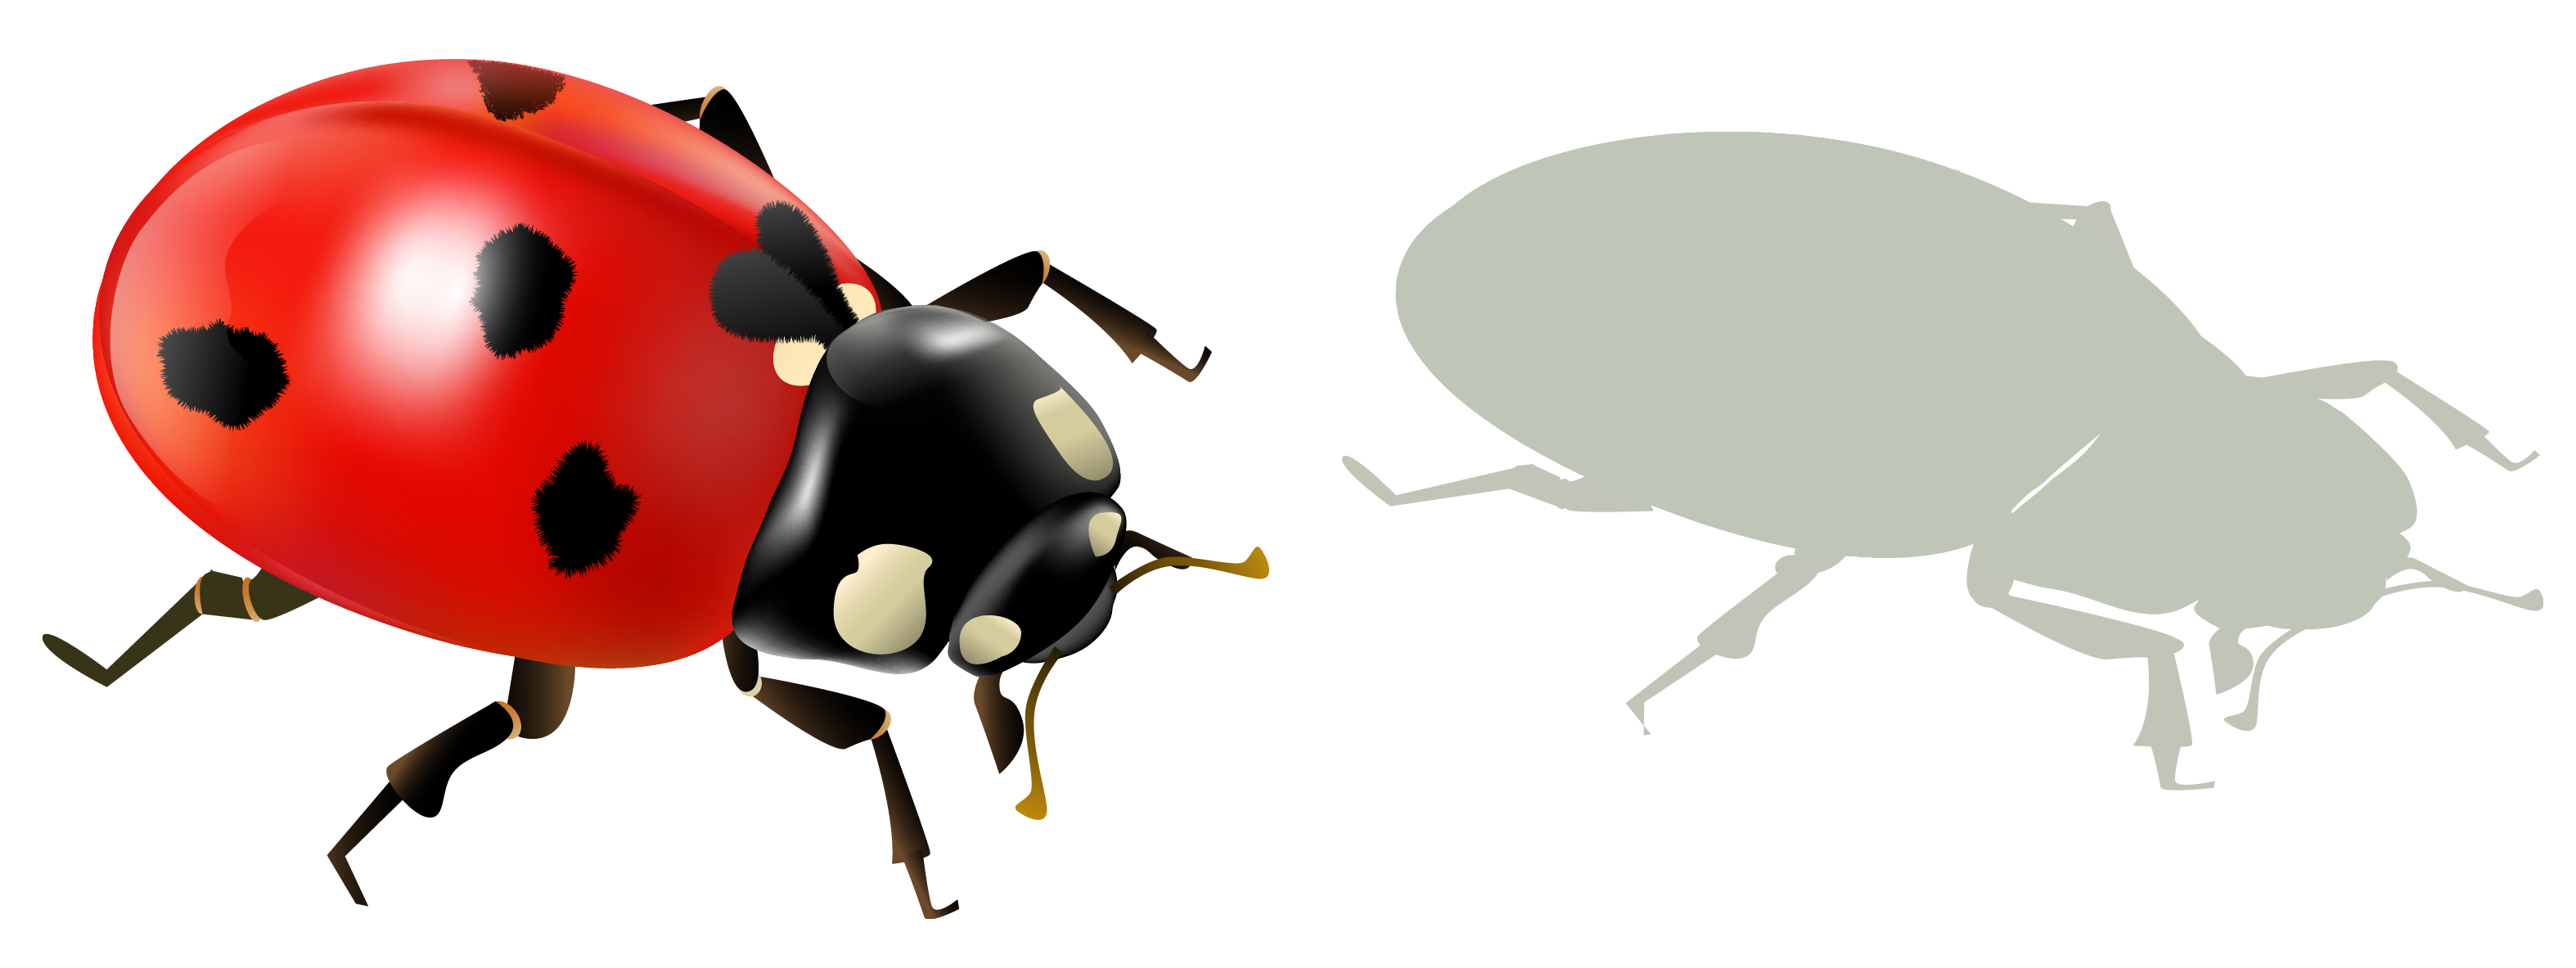 Andshadow png picture gallery. Ladybug clipart christmas